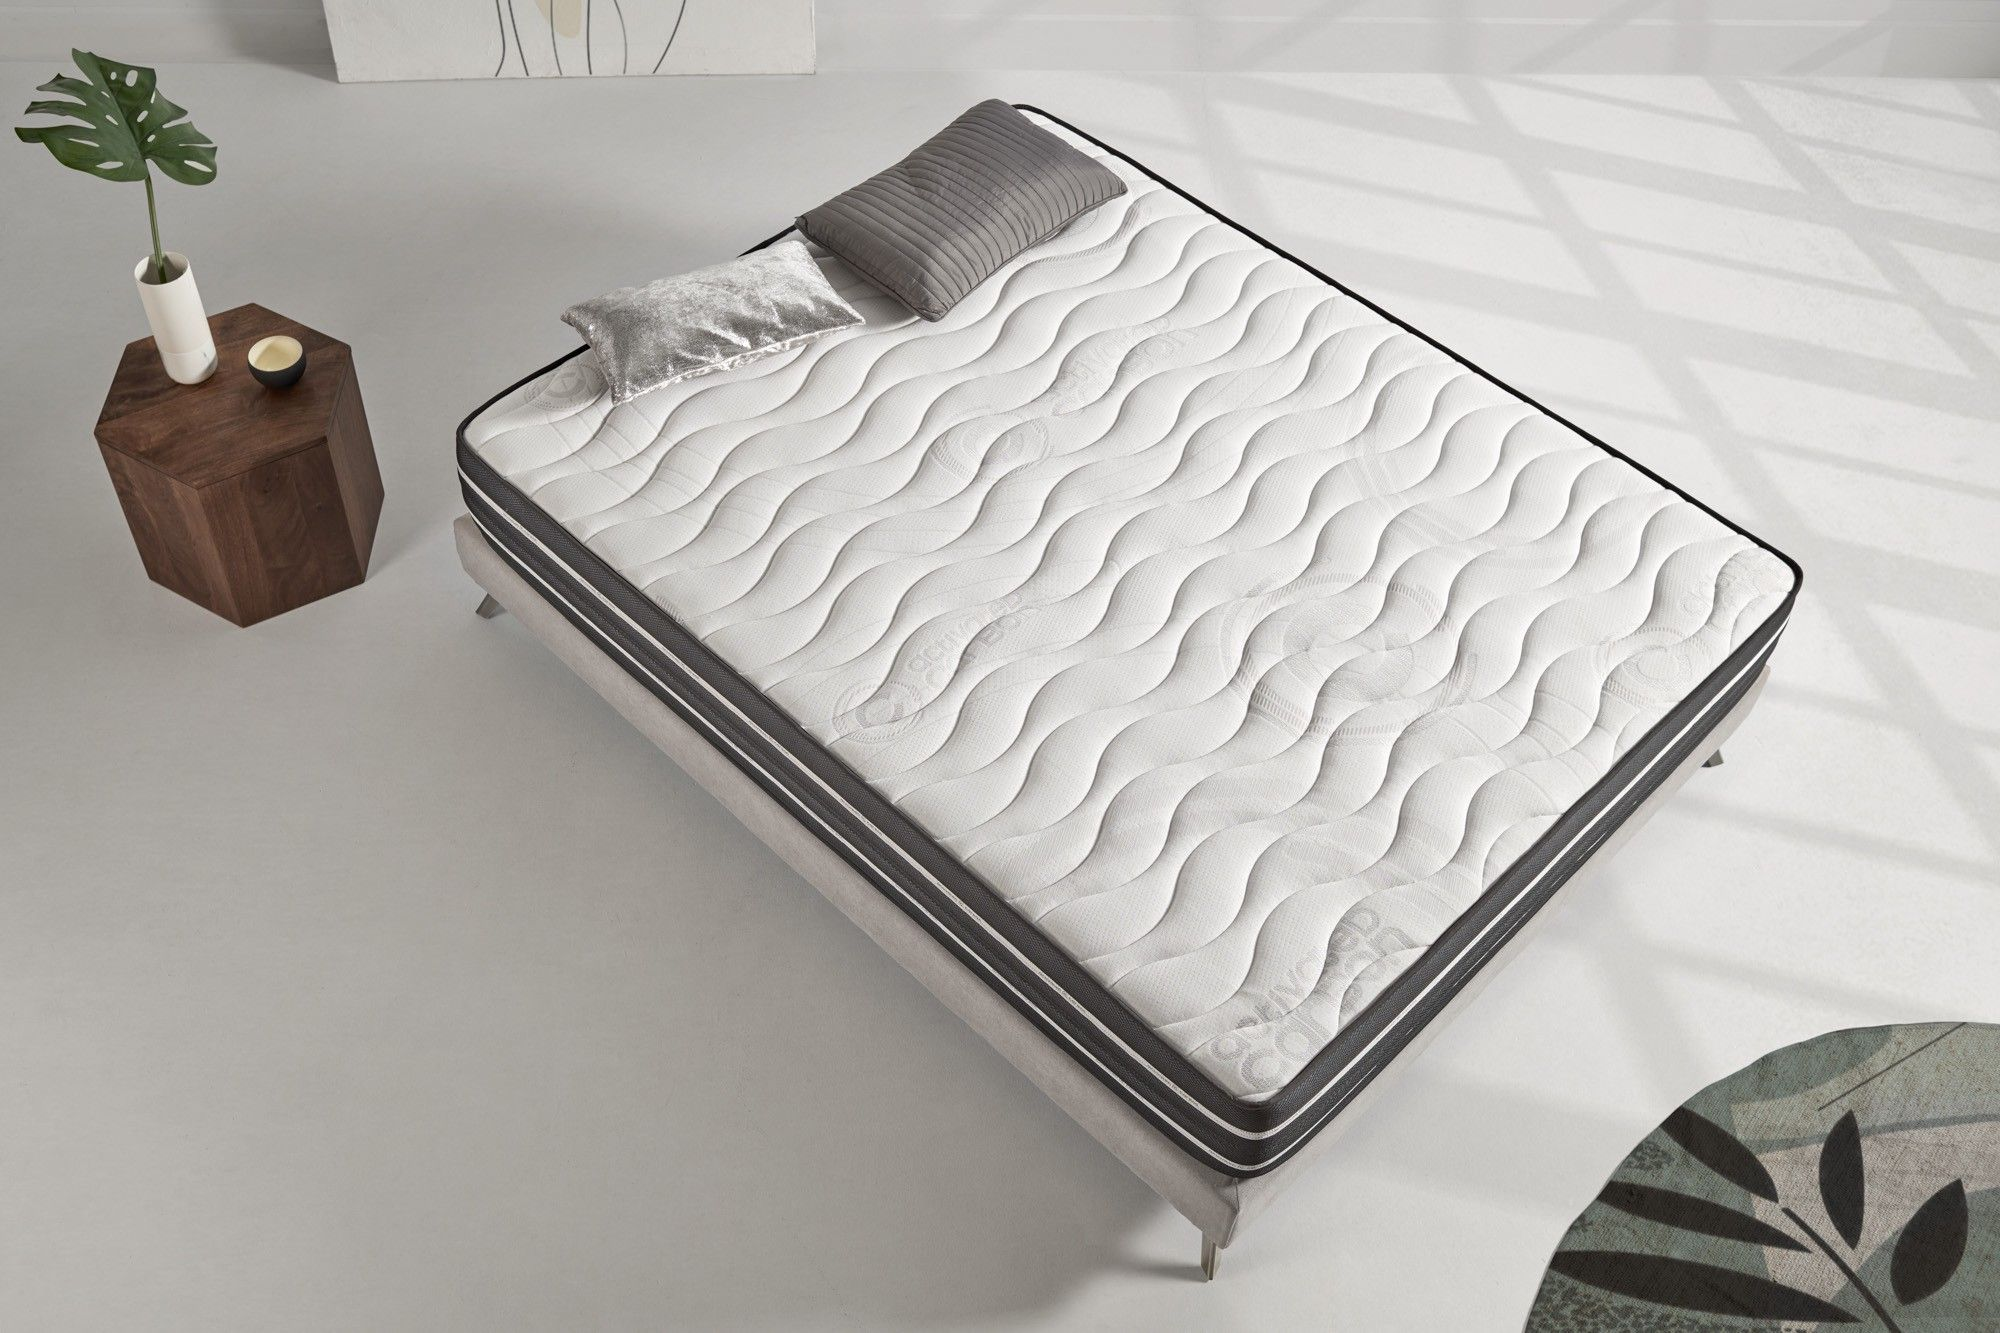 This mattress helps fight against insomnia and stress, effectively reducing micro-awakenings.